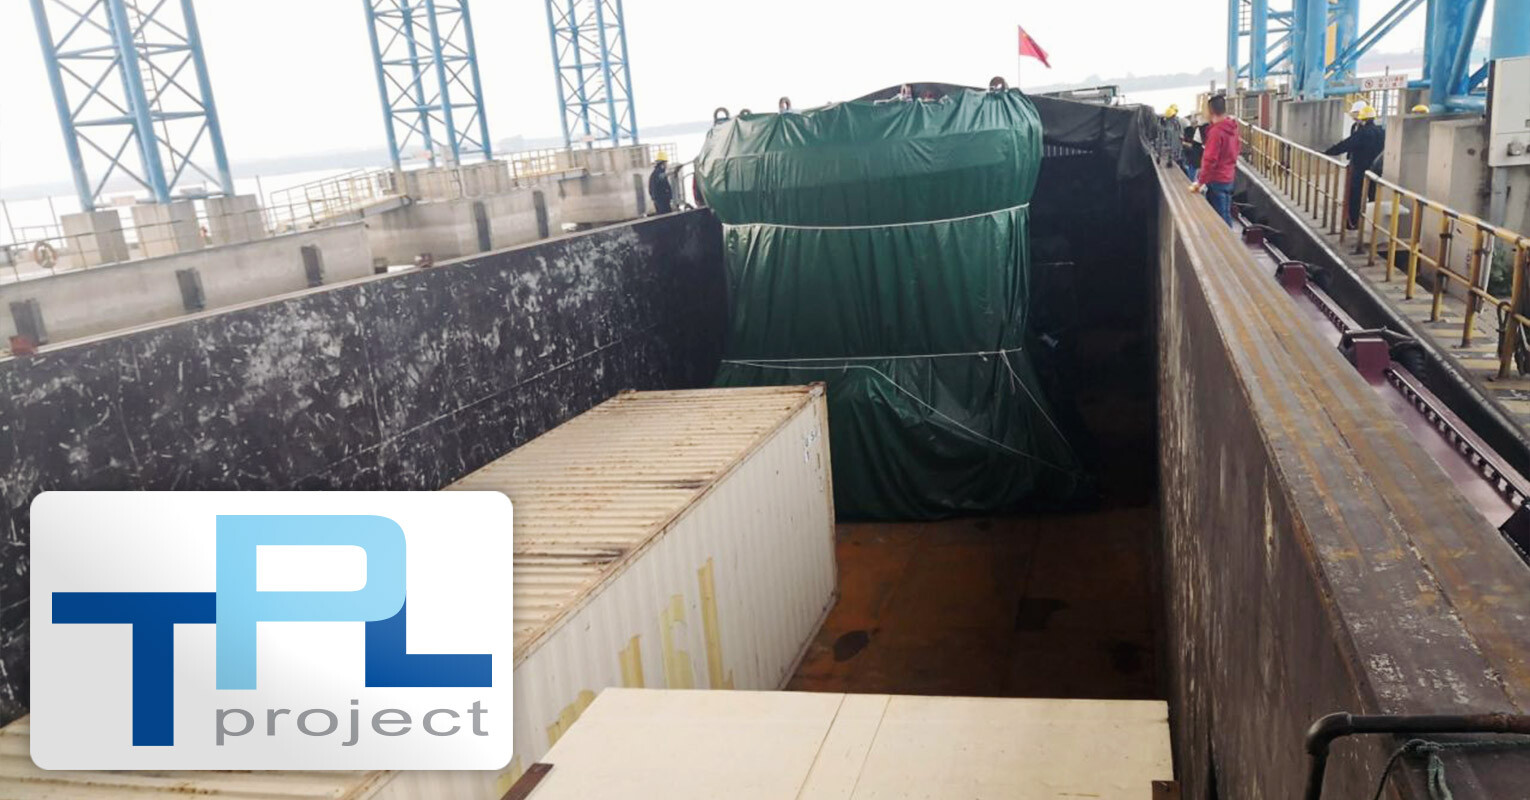 TPL Project Handled Ship Parts Destined for Europe with the Largest Piece Weighing 120 Tons and Measuring 6 Meters High